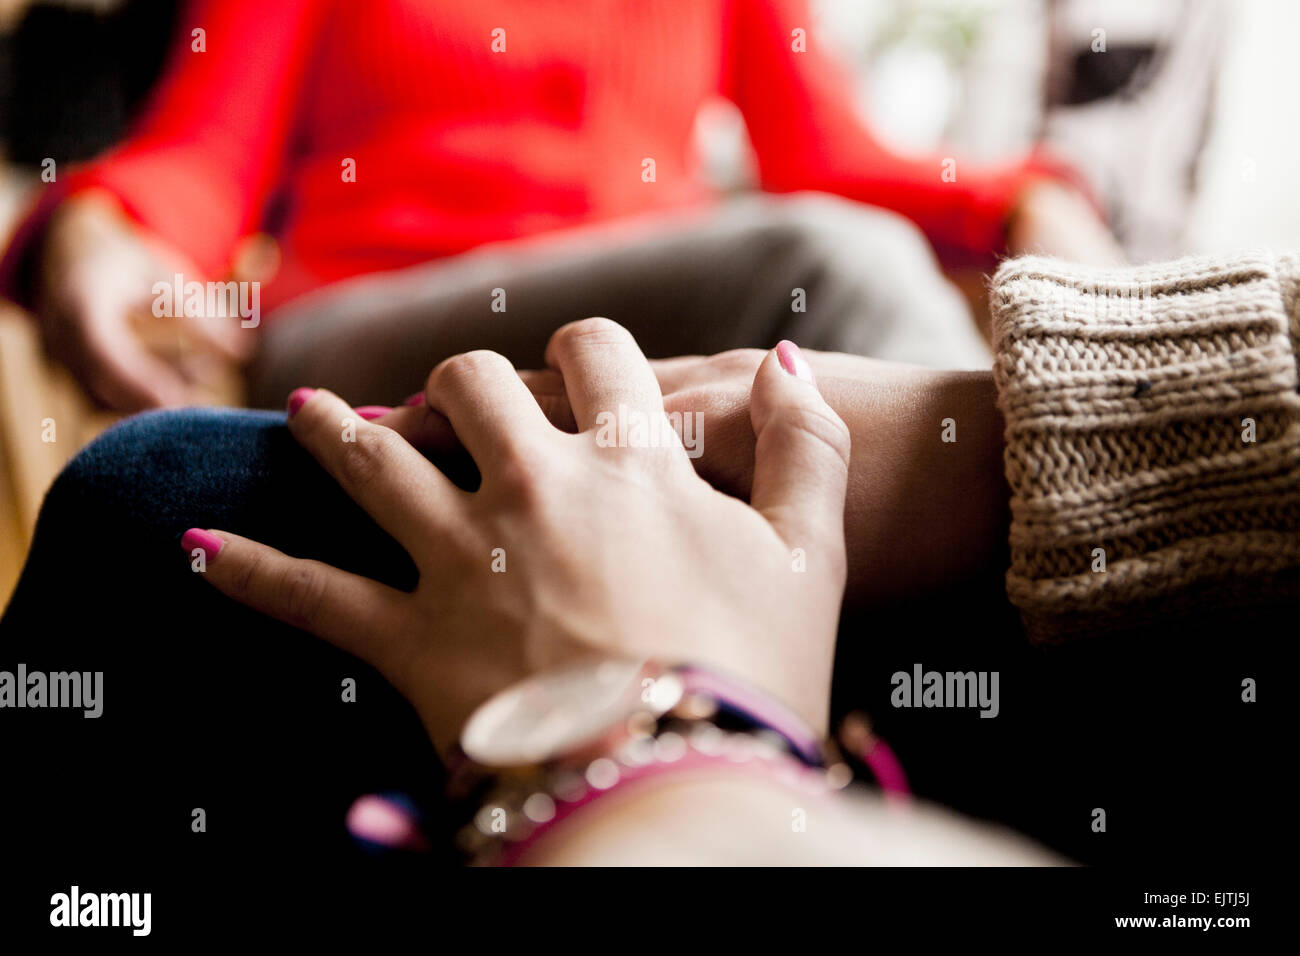 Cropped image of woman with hands clasped - Stock Image